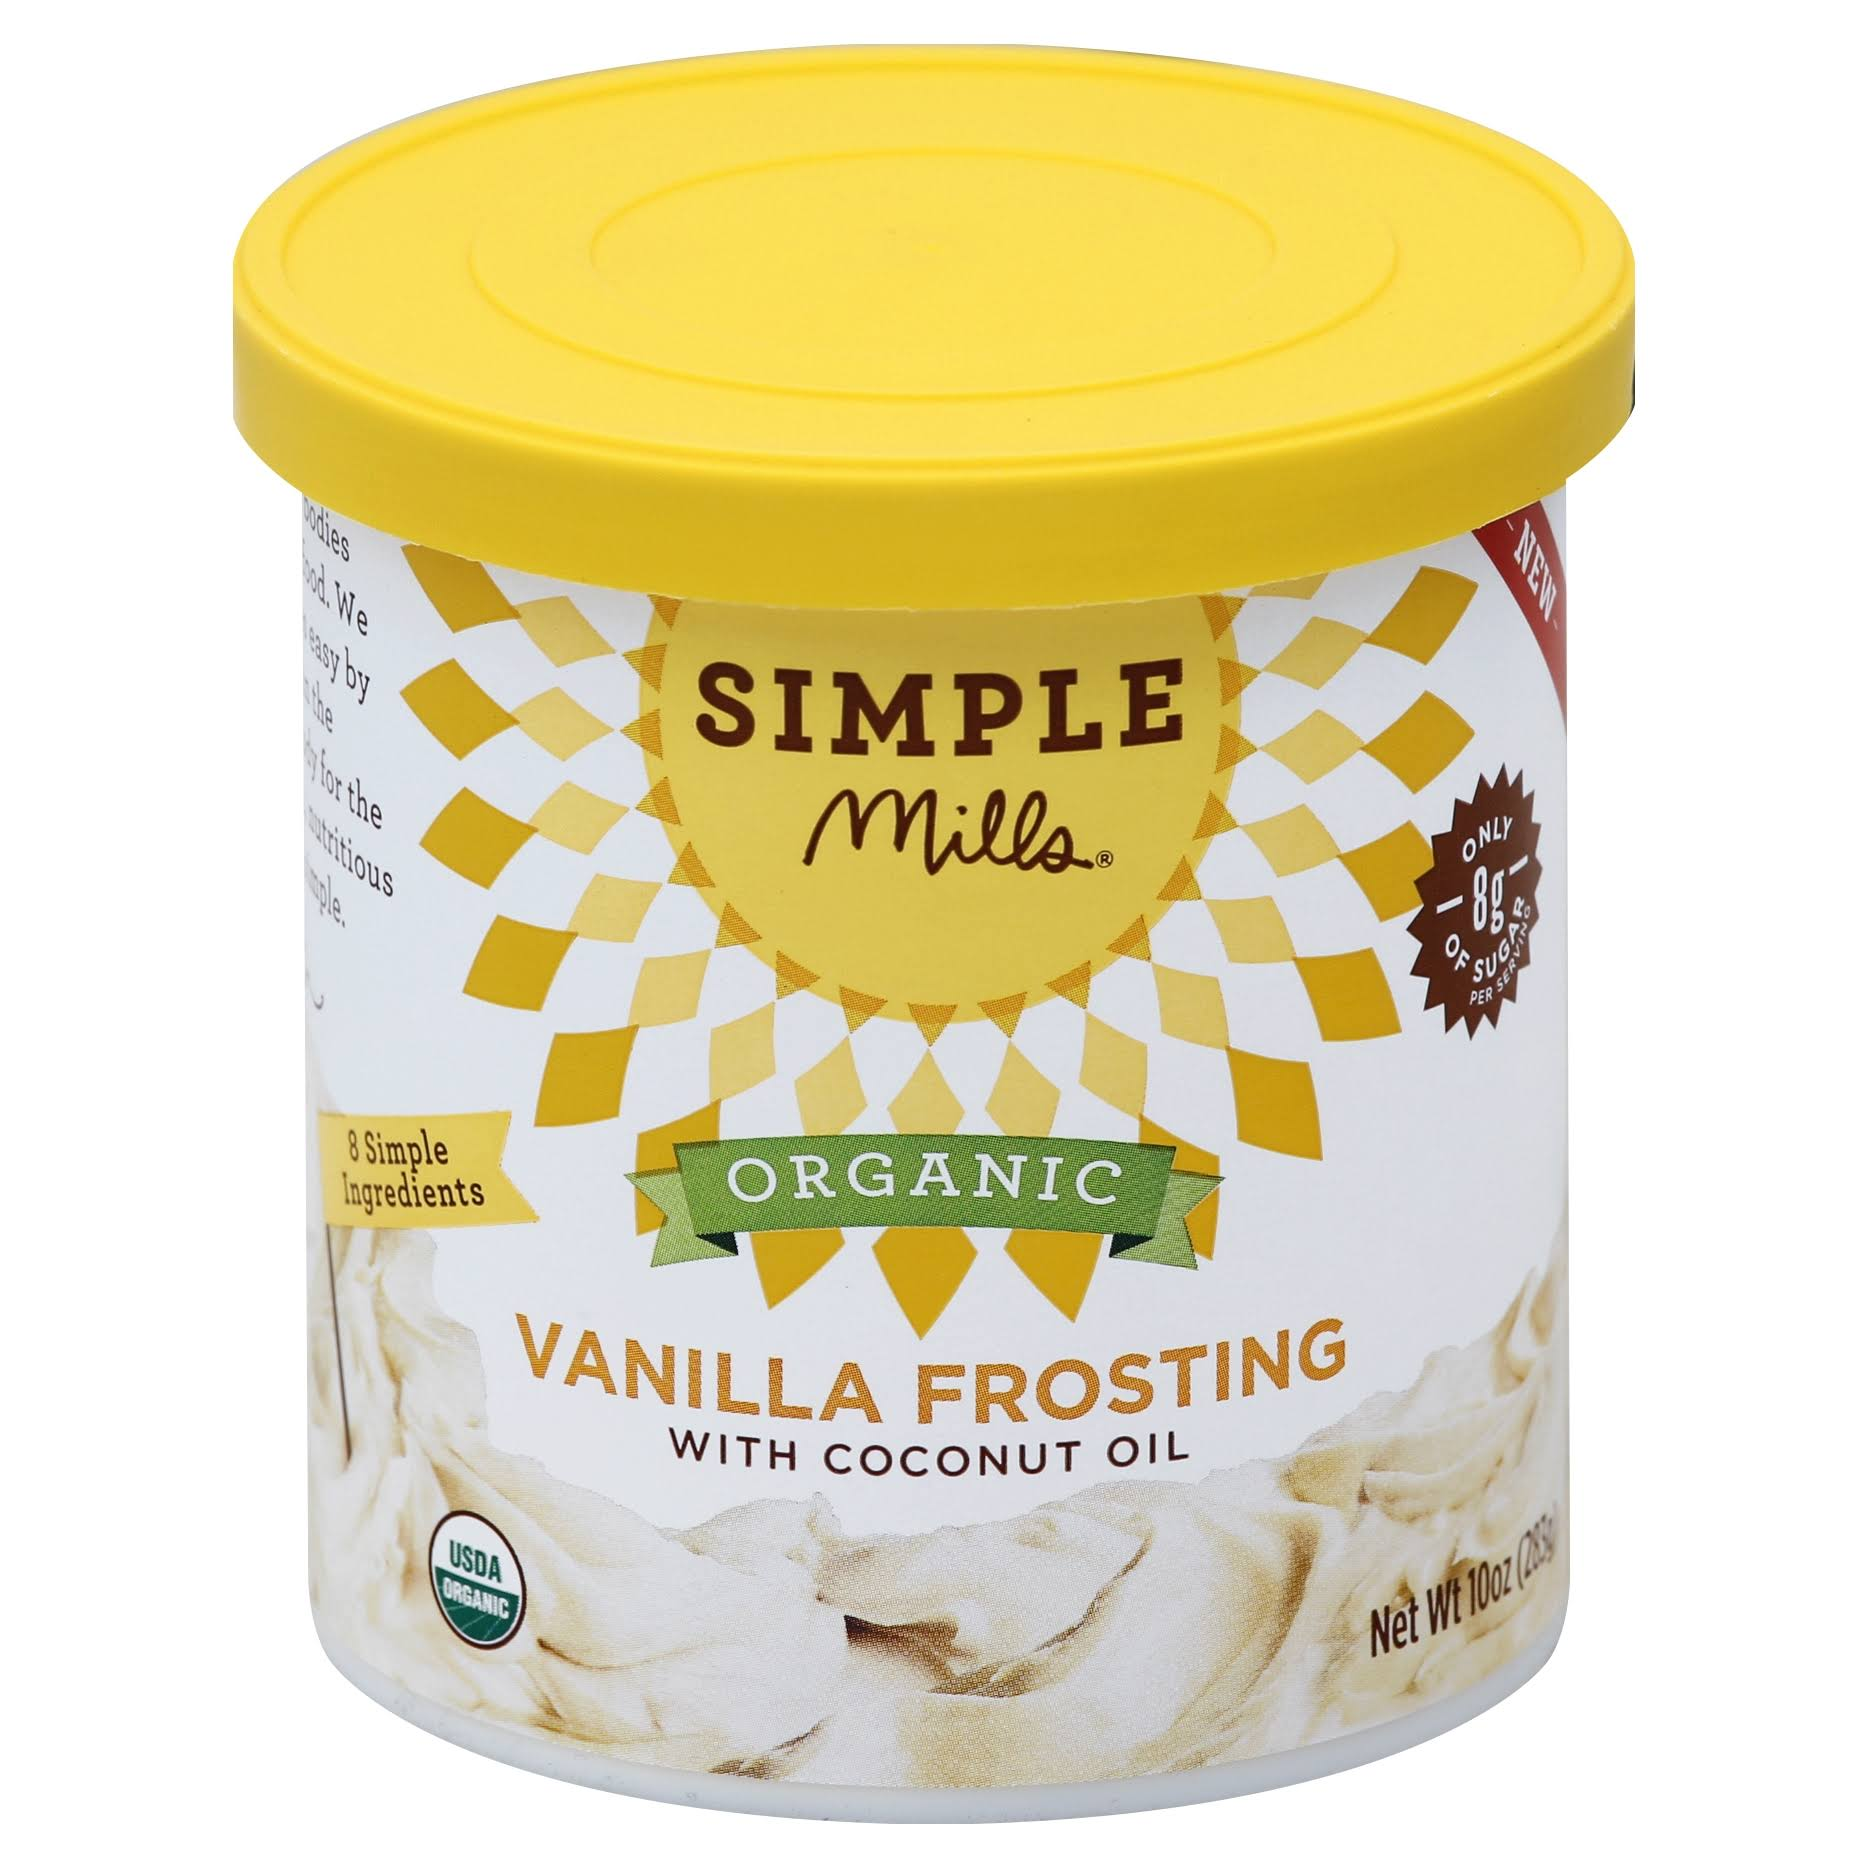 Simple Mills Organic Frosting - Vanilla, 10oz